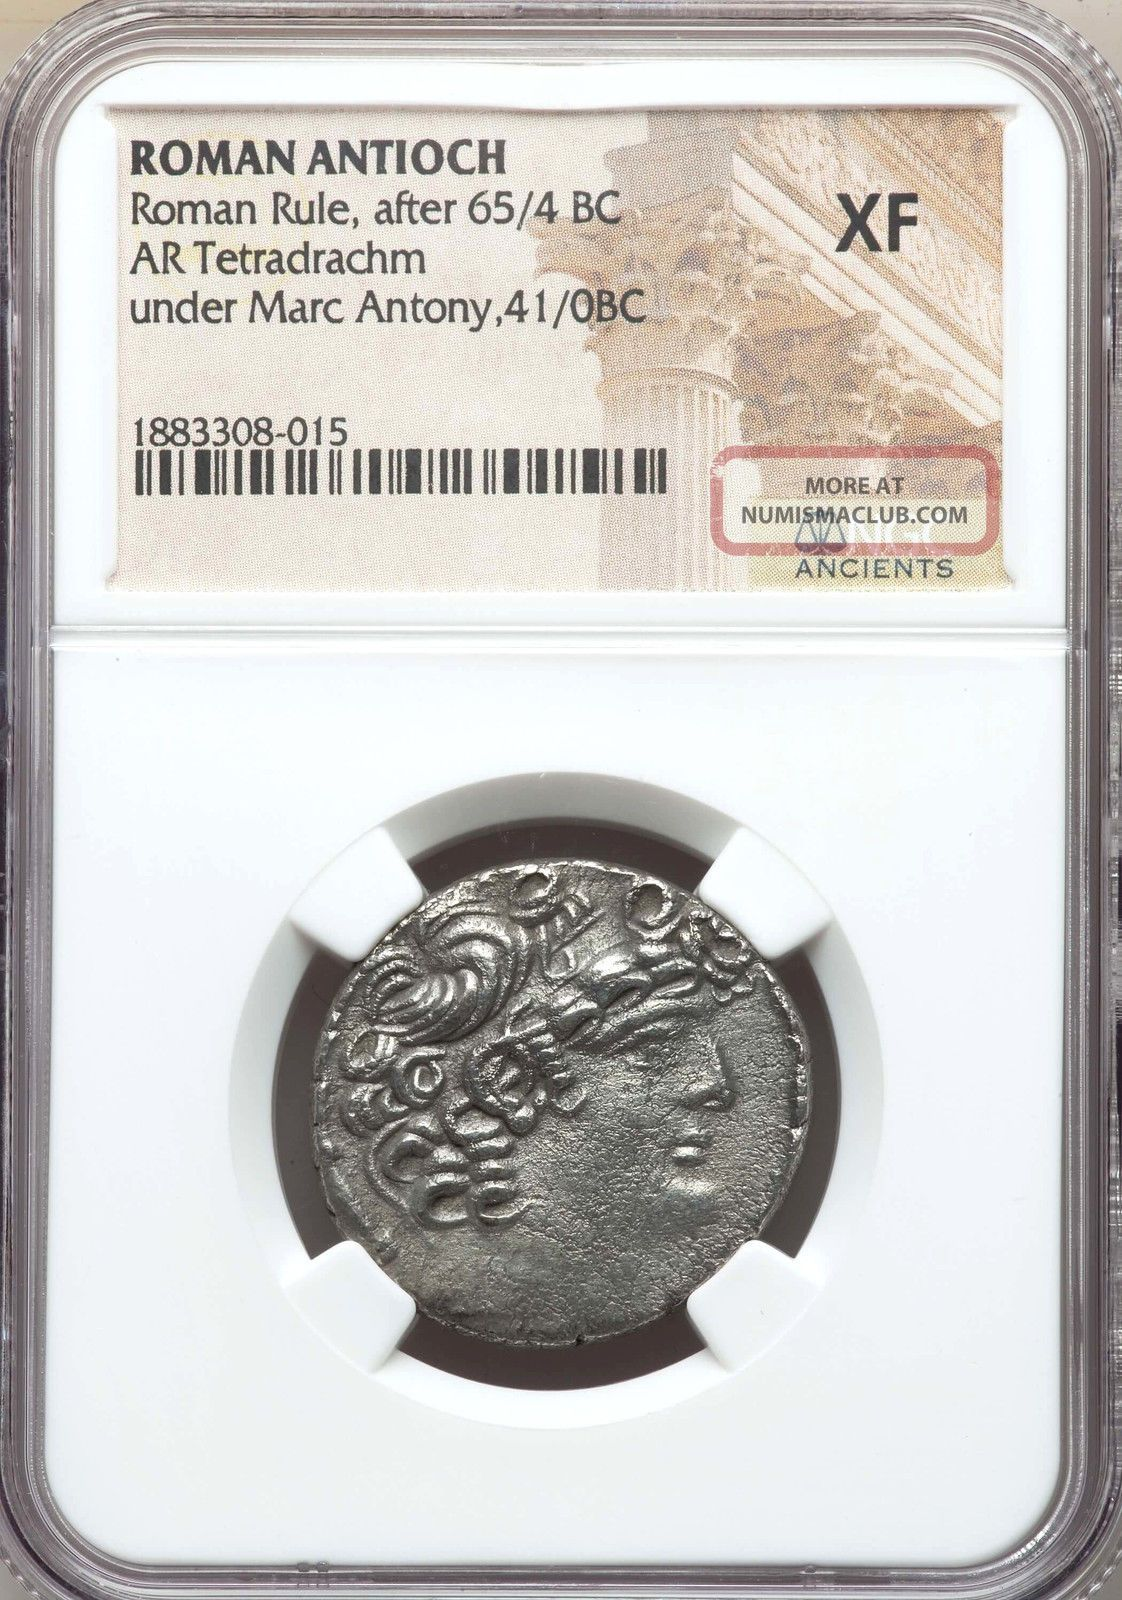 Syria Antioch Mark Antony,  As Triumvir 43 - 31 Bc Ar Tetradrachm Ngc Xf Coins: Ancient photo